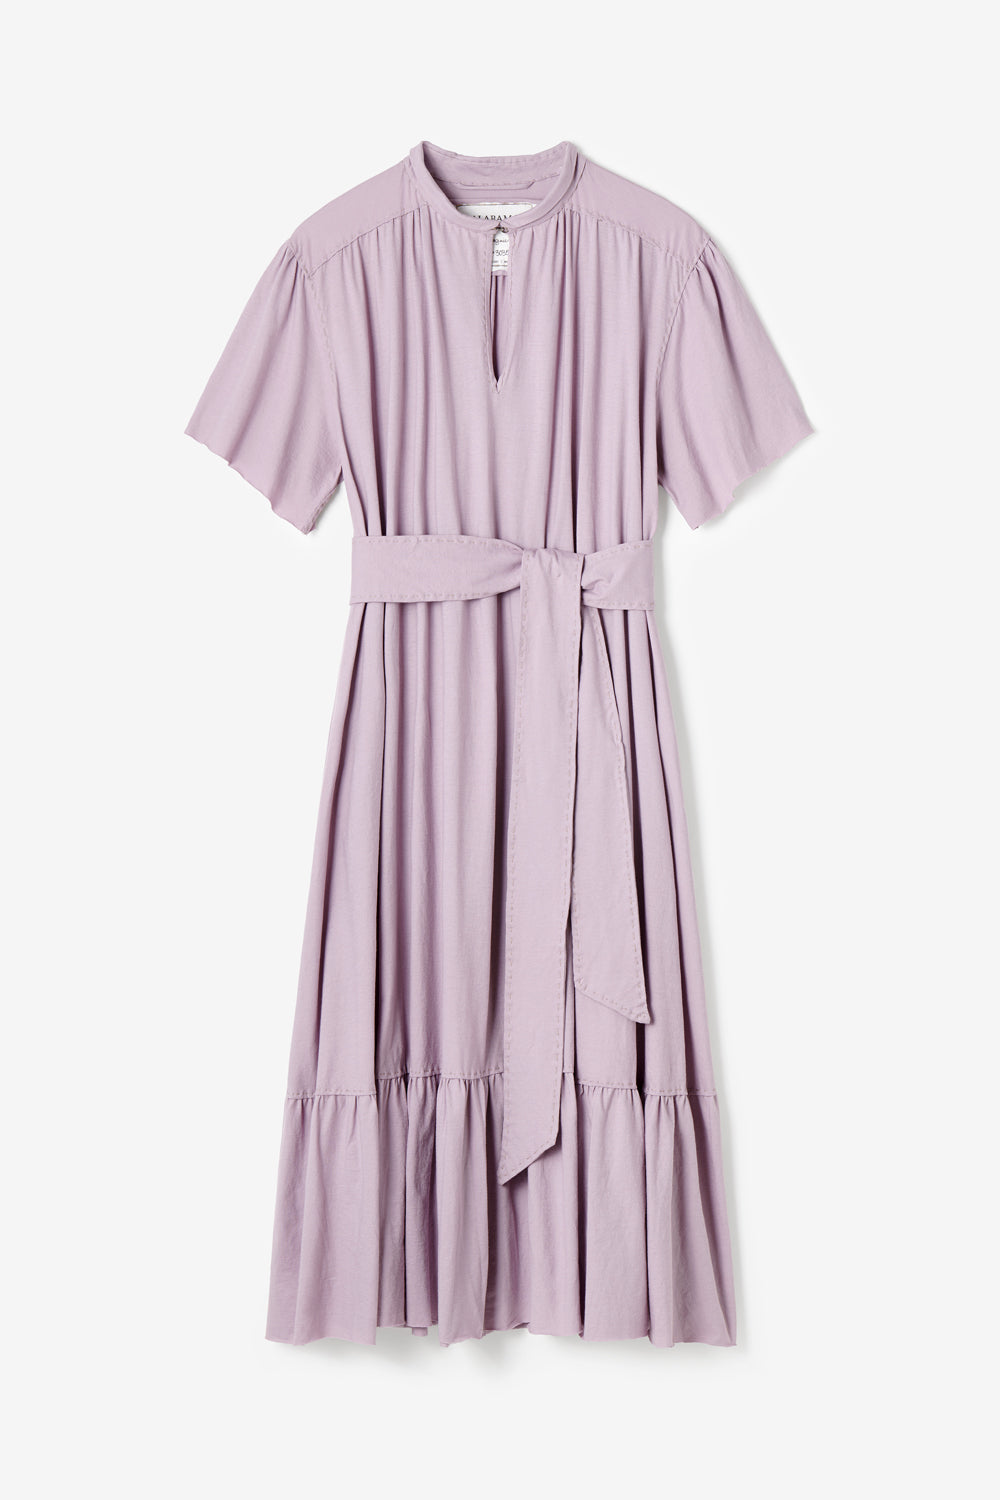 Alabama Chanin Ines Dress with Shirred Keyhole Neckline and Belt in Organic Lightweight Lilac Cotton